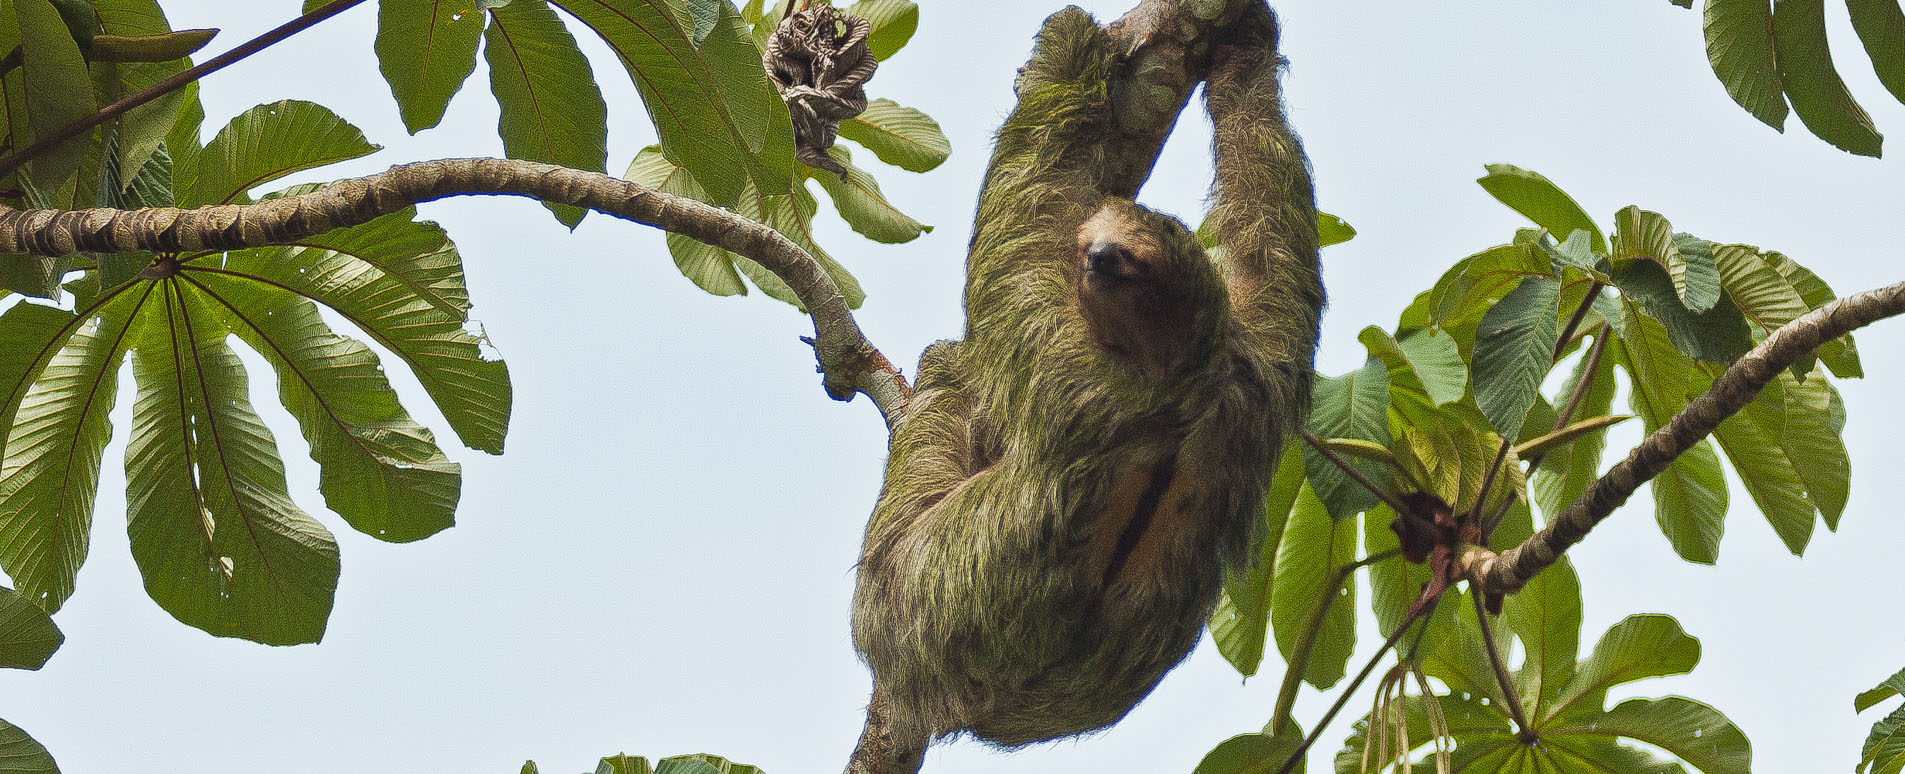 costa rica wildlife sloths